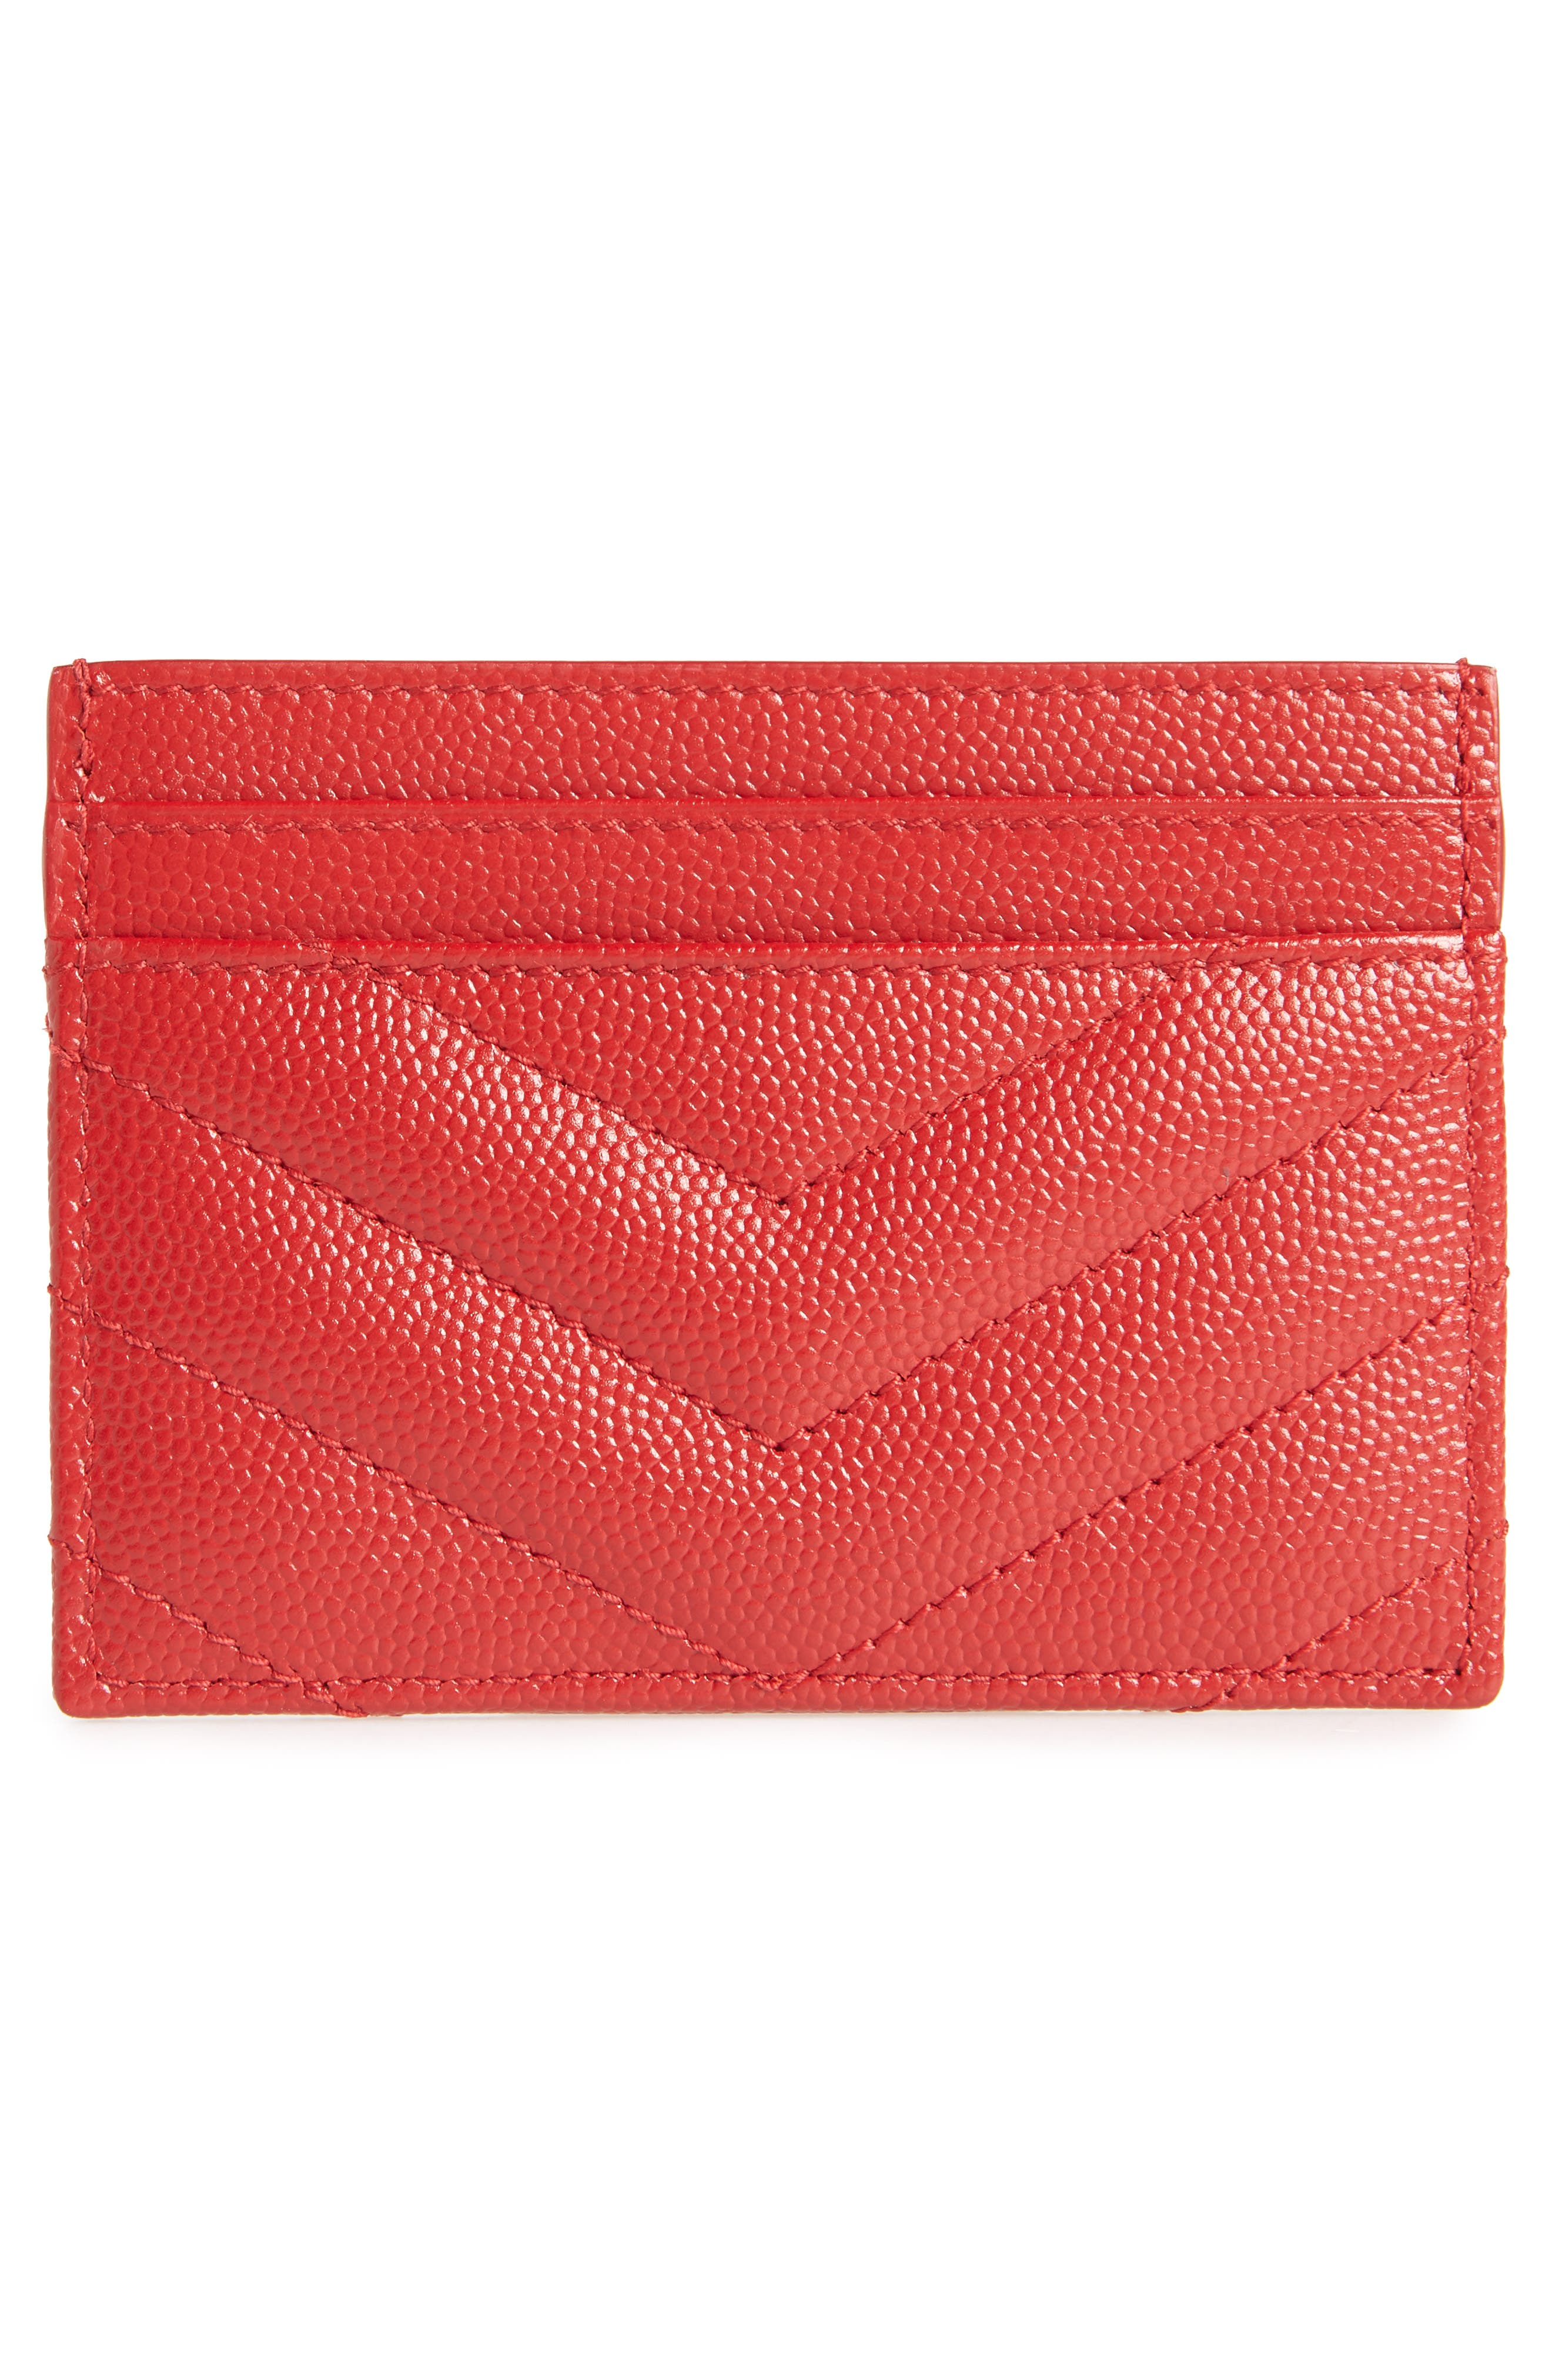 Monogram Quilted Leather Credit Card Case,                             Alternate thumbnail 2, color,                             ROUGE EROS